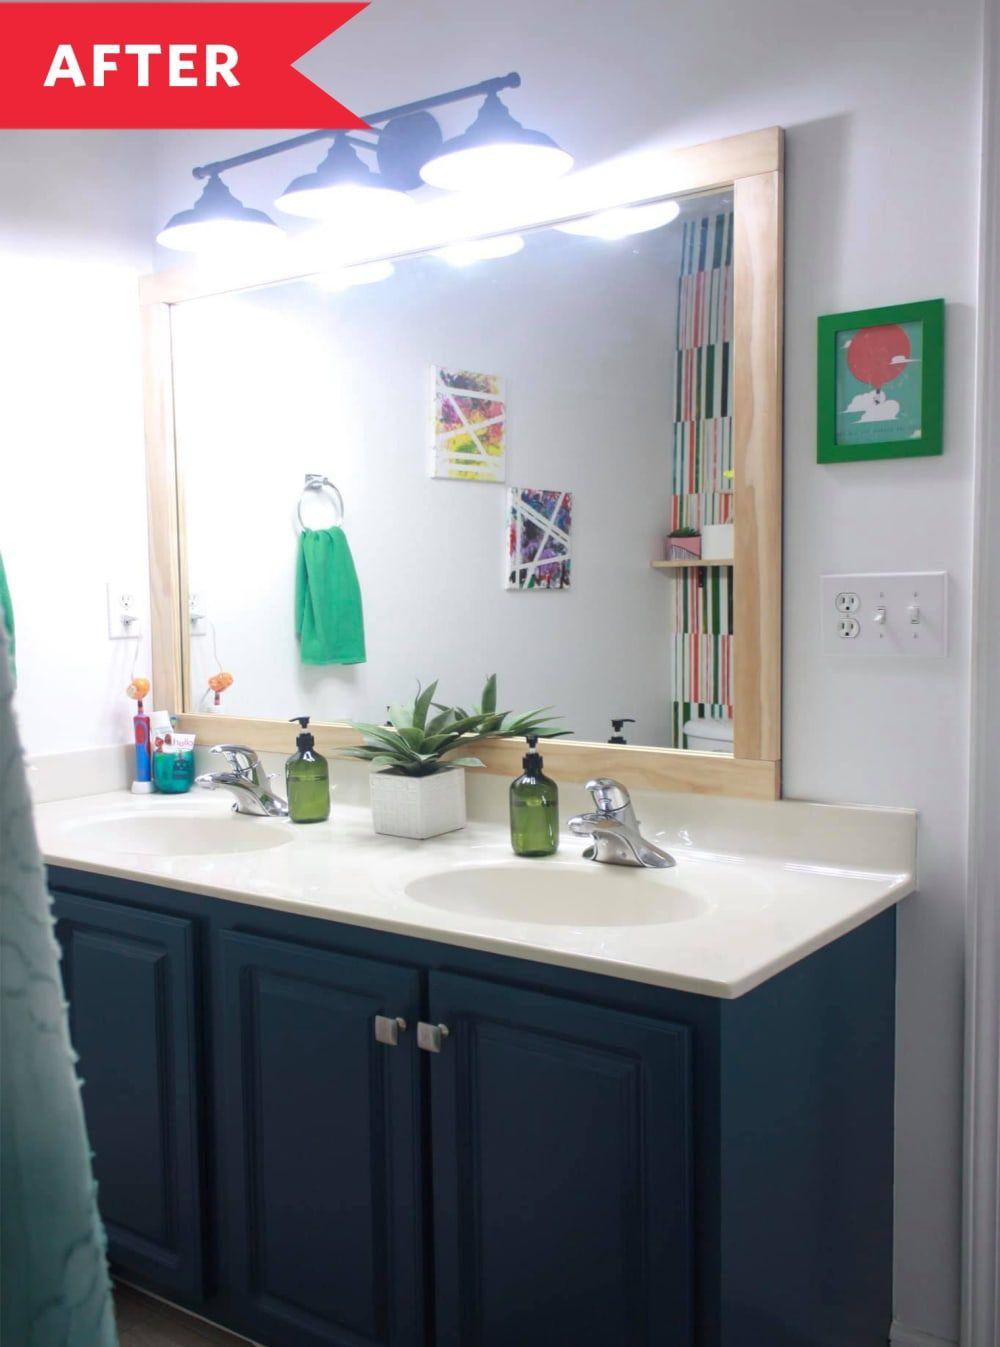 Before and After: This Bright DIY Bathroom Transformation ...